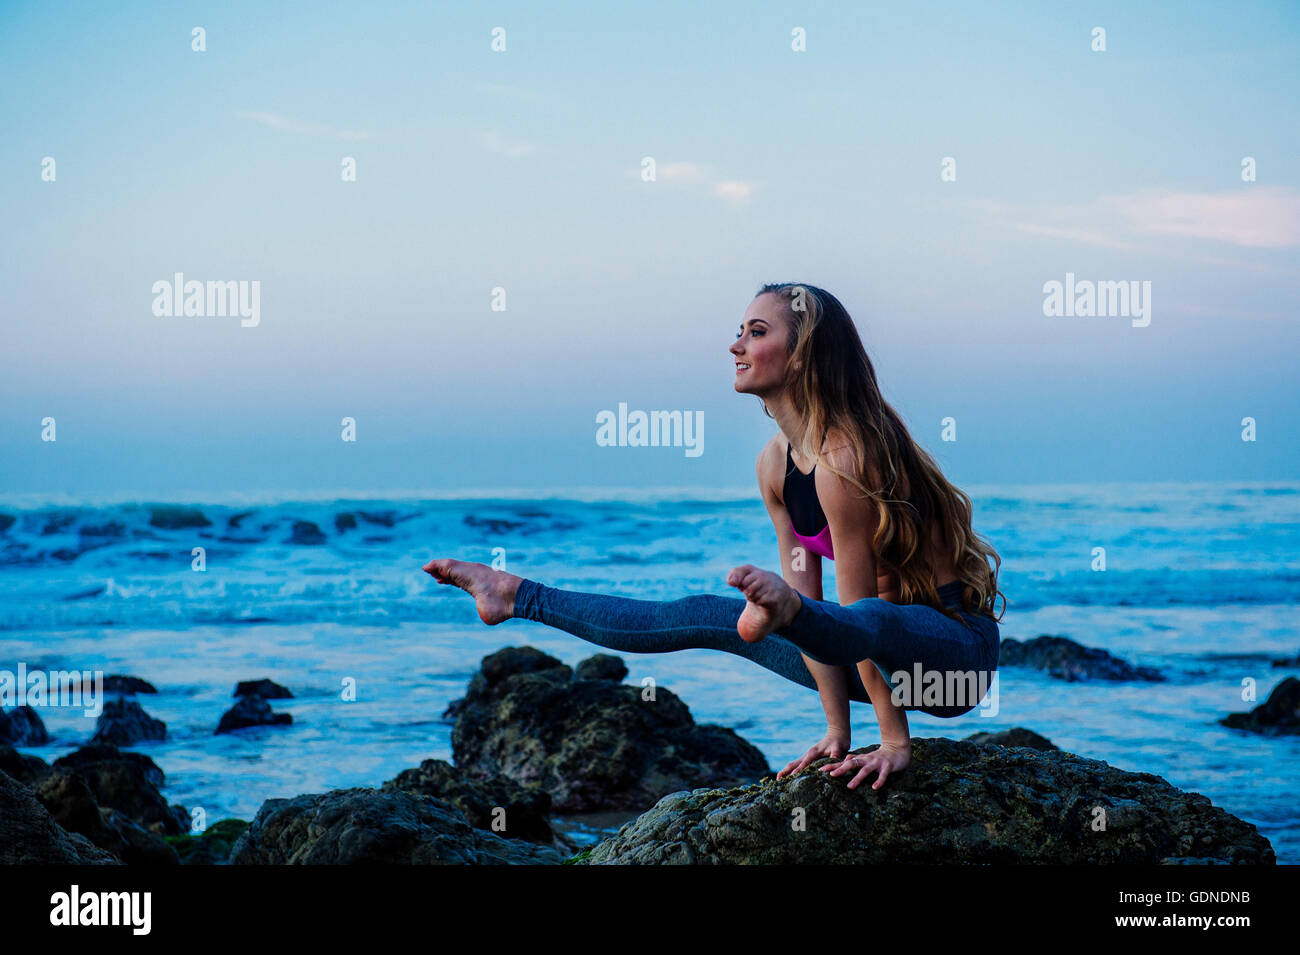 Young woman practicing yoga pose on rocks at beach, Los Angeles, California, USA Stock Photo